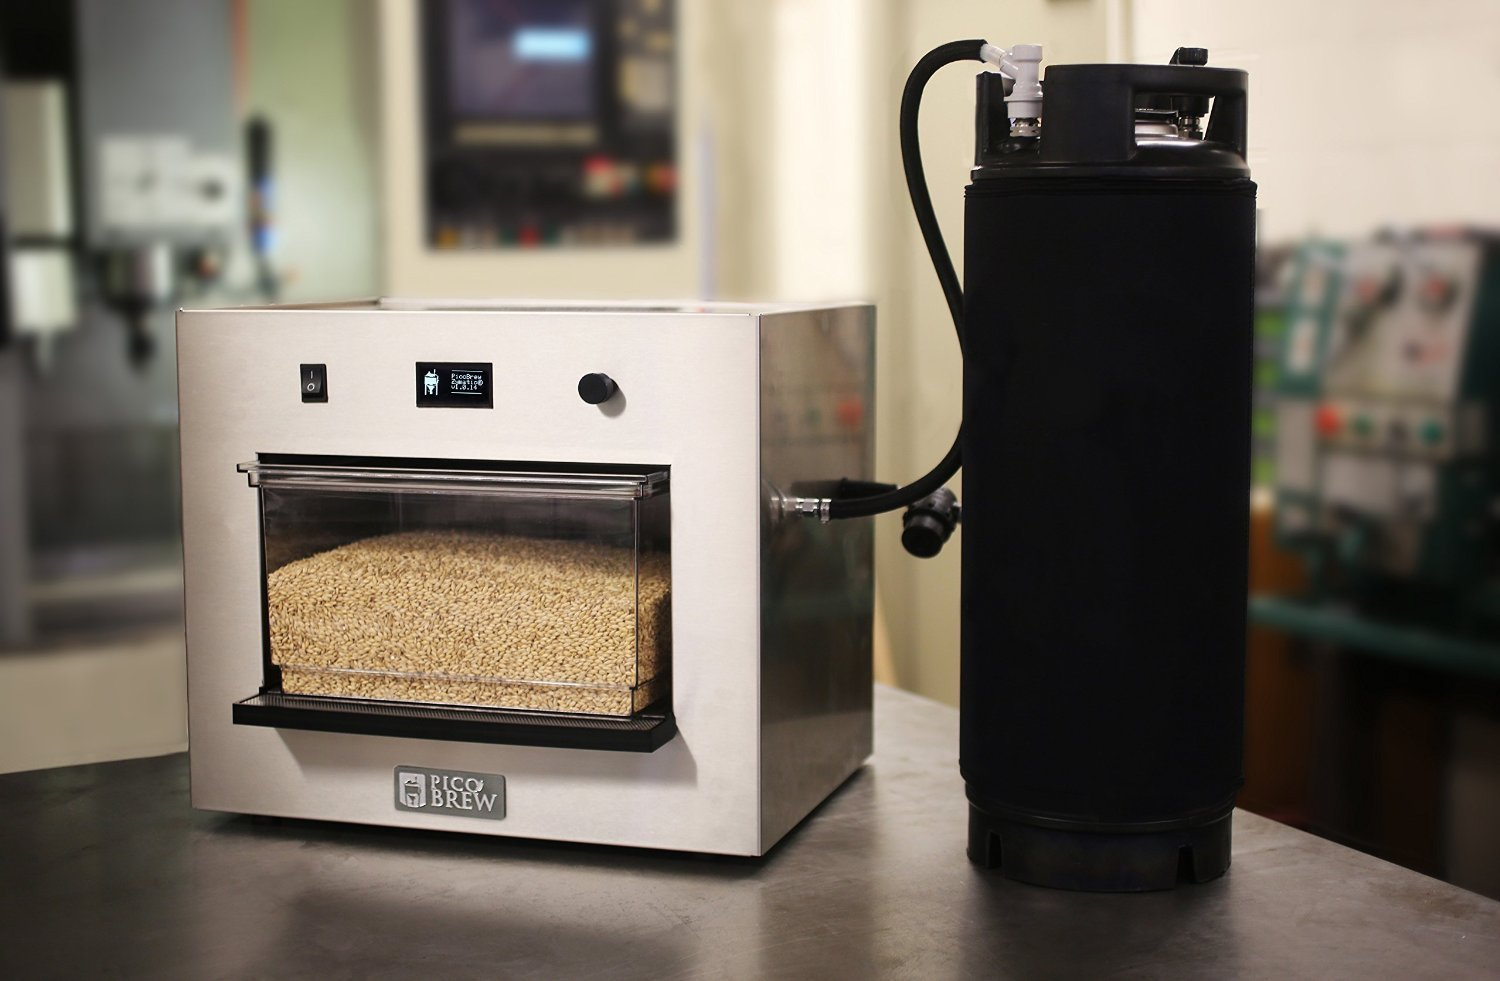 World's First All-grain Beer Brewing Appliance